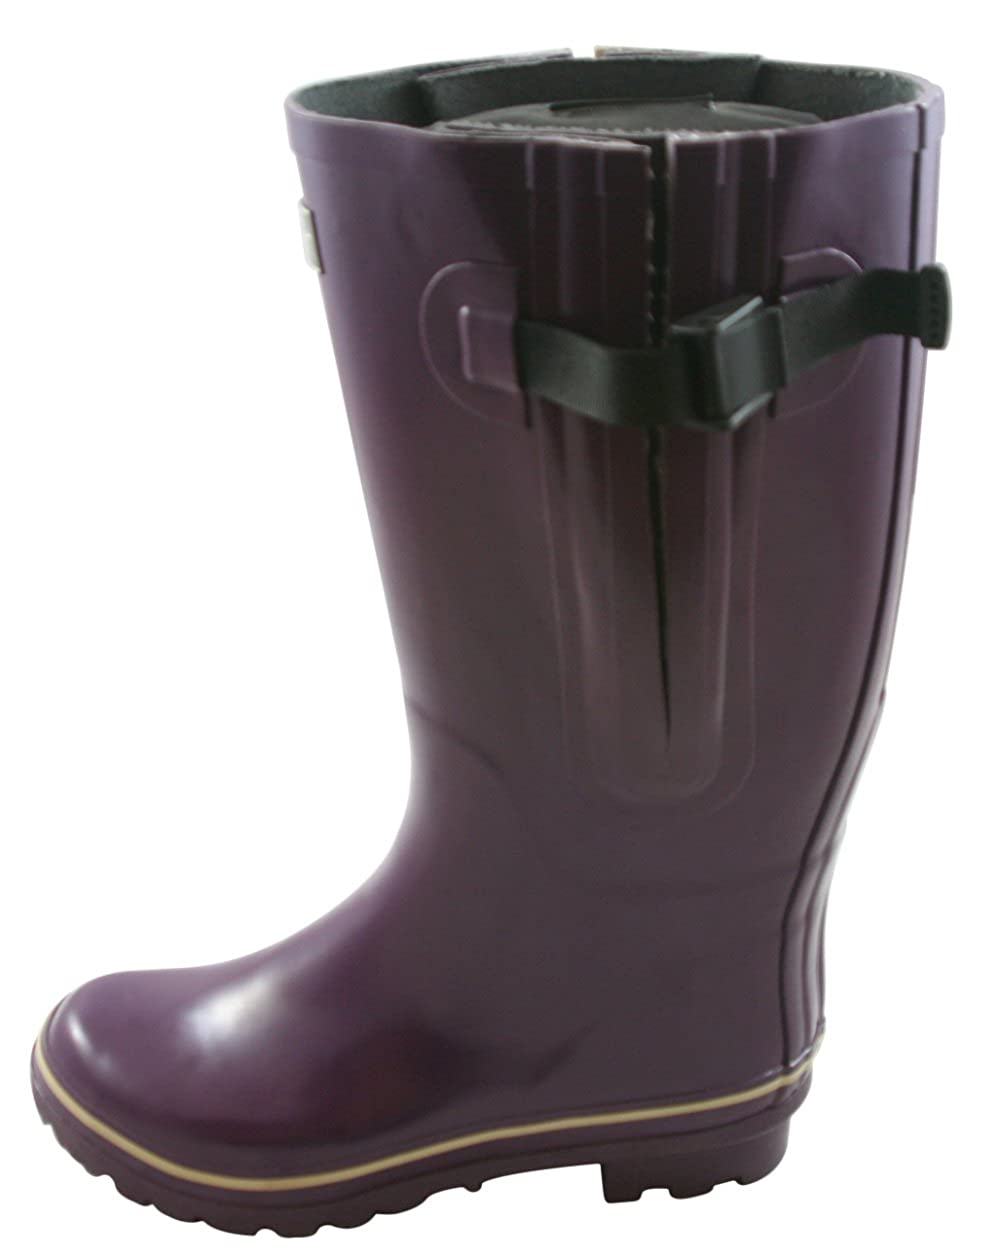 Jileon Extra Wide Calf Rubber Rain Boots for Women-Widest Fit Boots in The US-up to 21 inch Calves-Wide in The Foot and Ankle